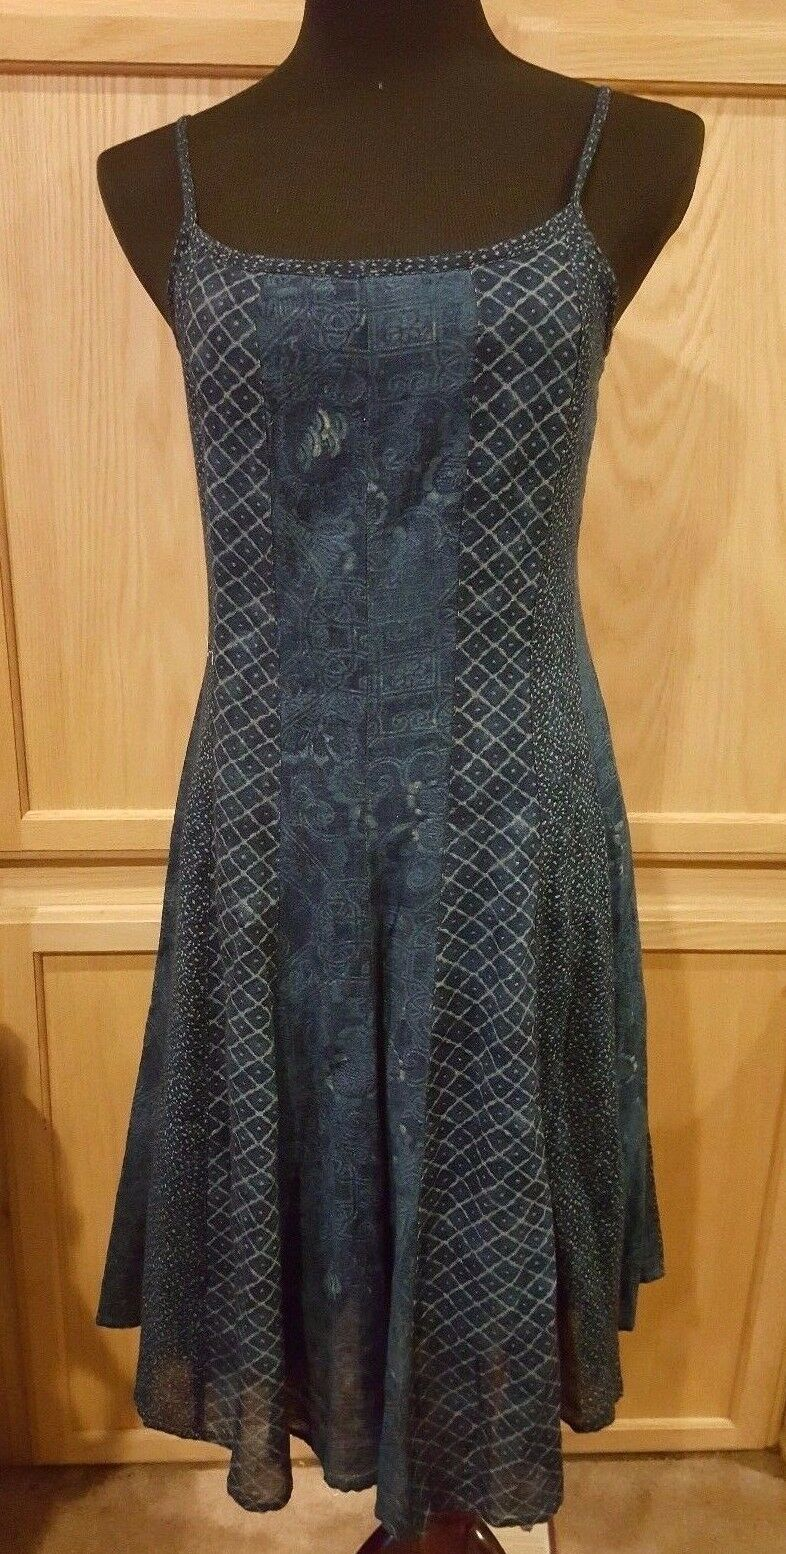 Ralph Lauren Indigo-Multi Gauze Cotton Fit & Flare Boho Dress - MSRP